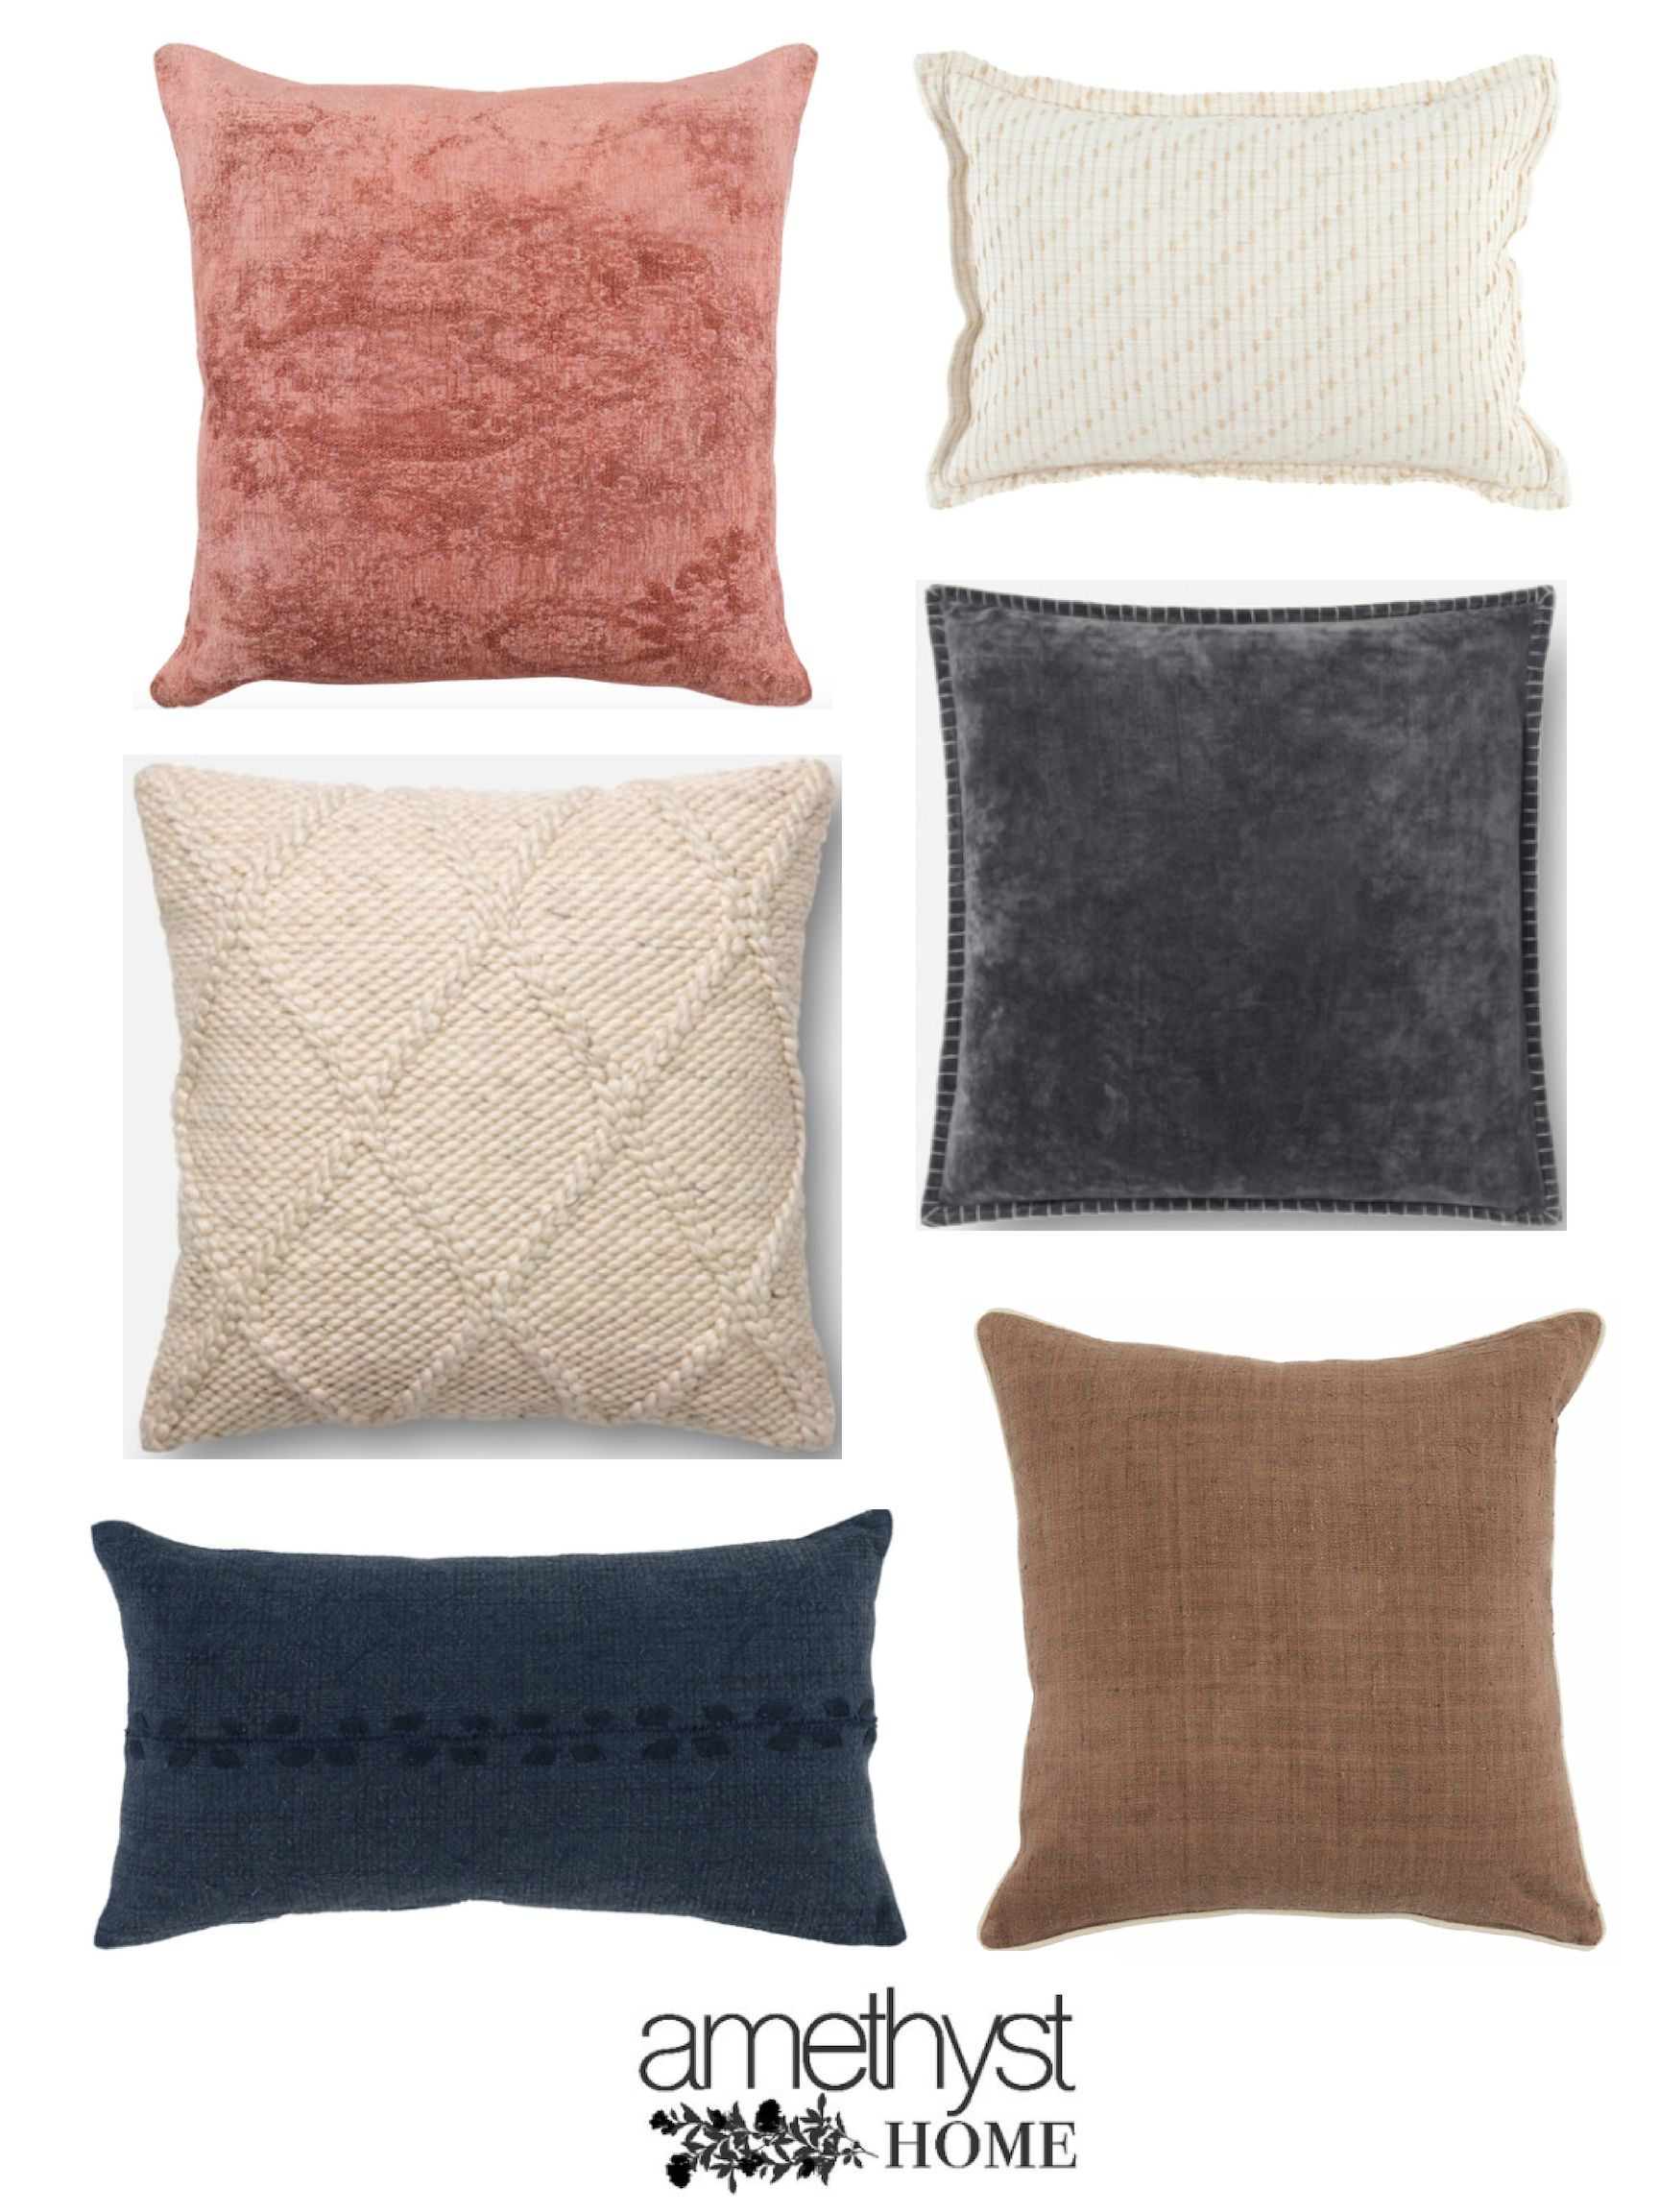 Darling Selection Of Throw Pillows From Amethyst Home I Love The